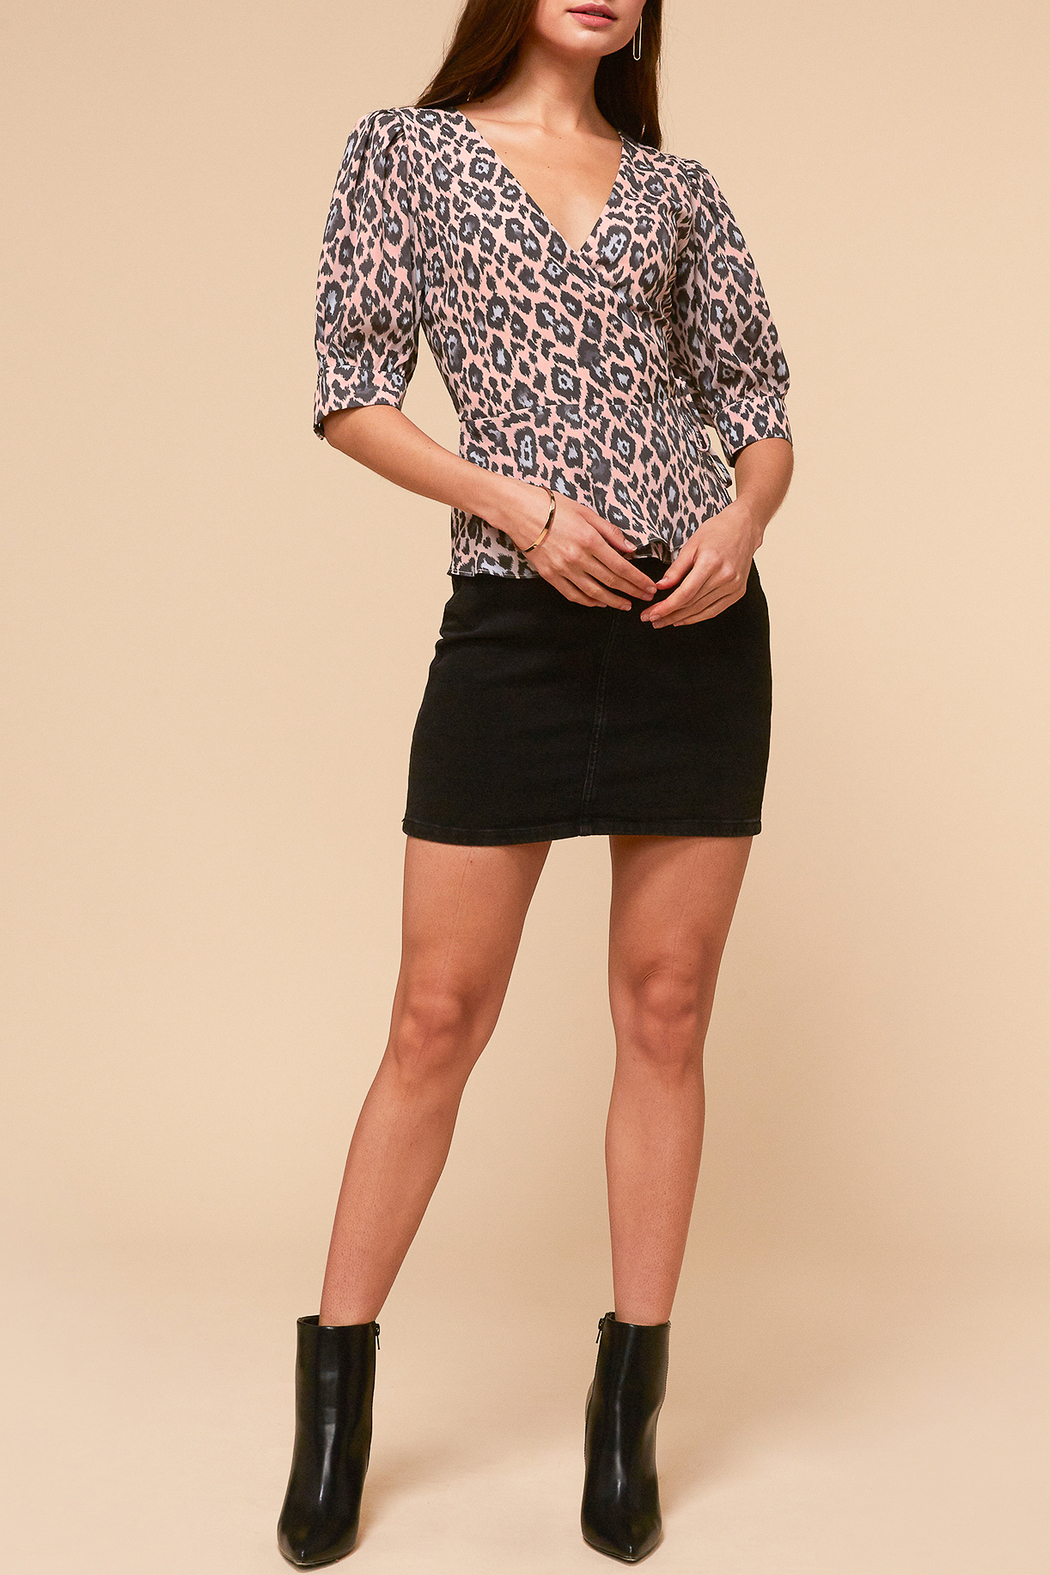 Adelyn Rae Camille Wrap Front Blouse - Front Full Image